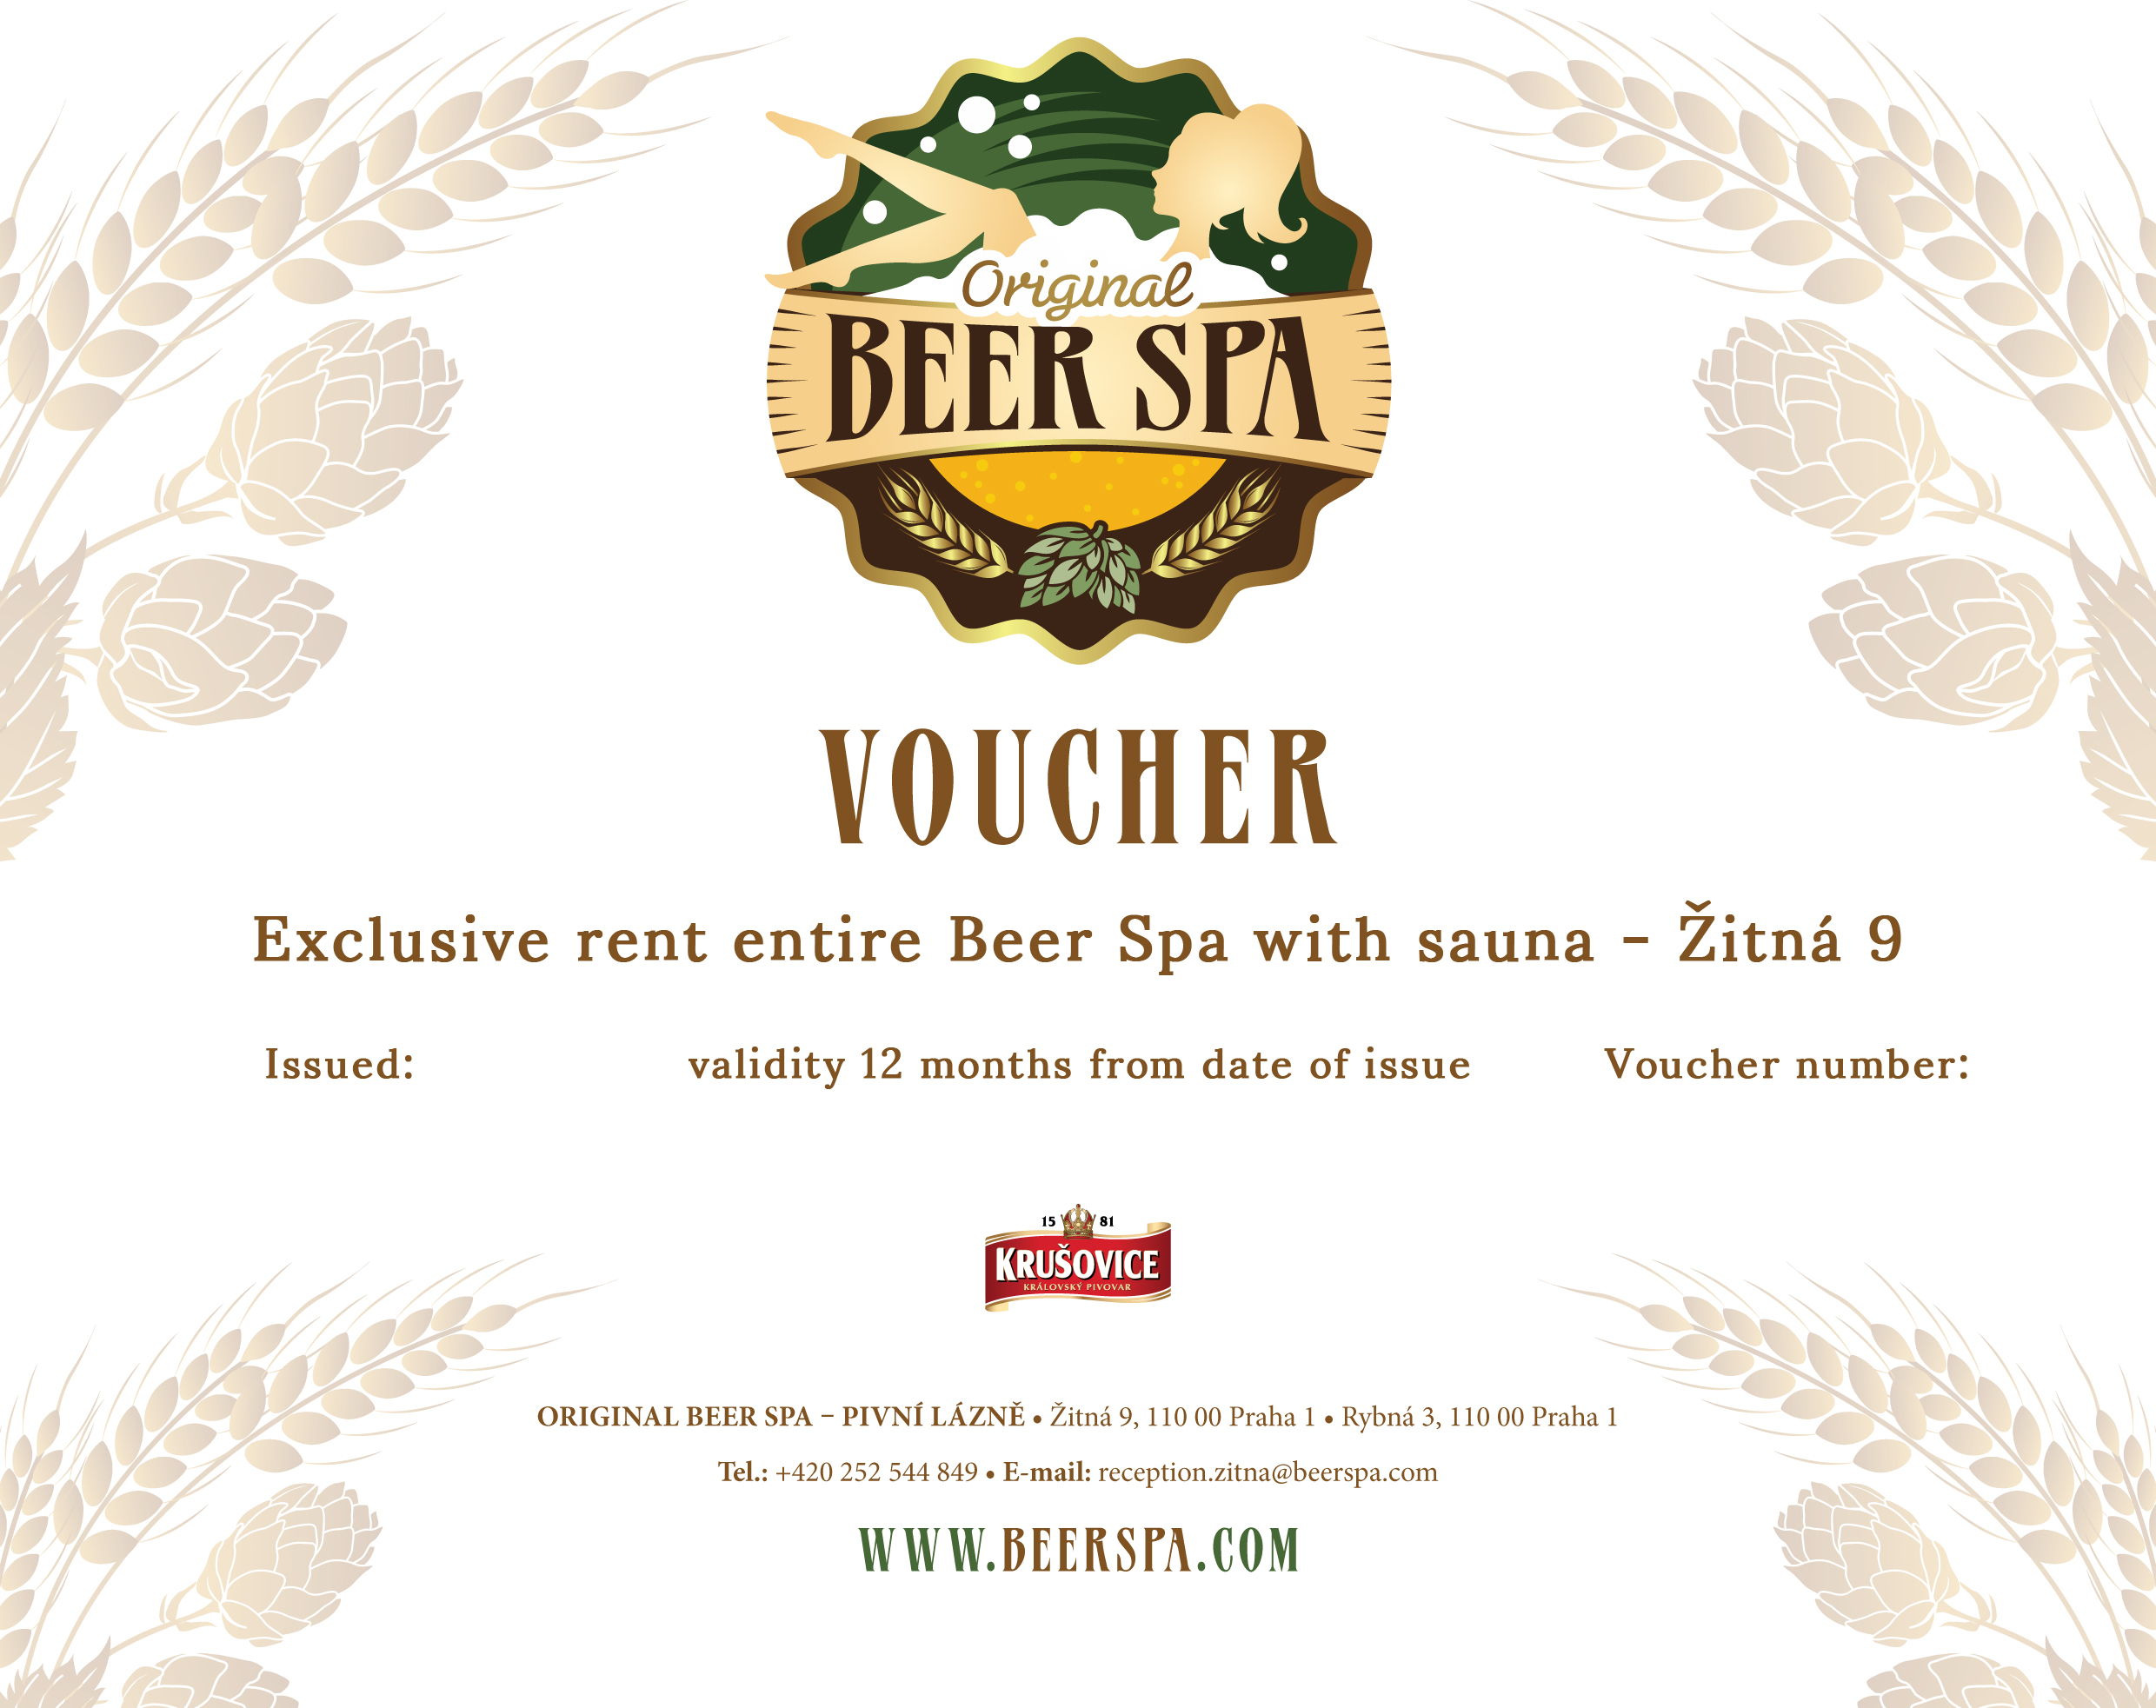 Exclusive rent entire Beer Spa with sauna - Žitná 9